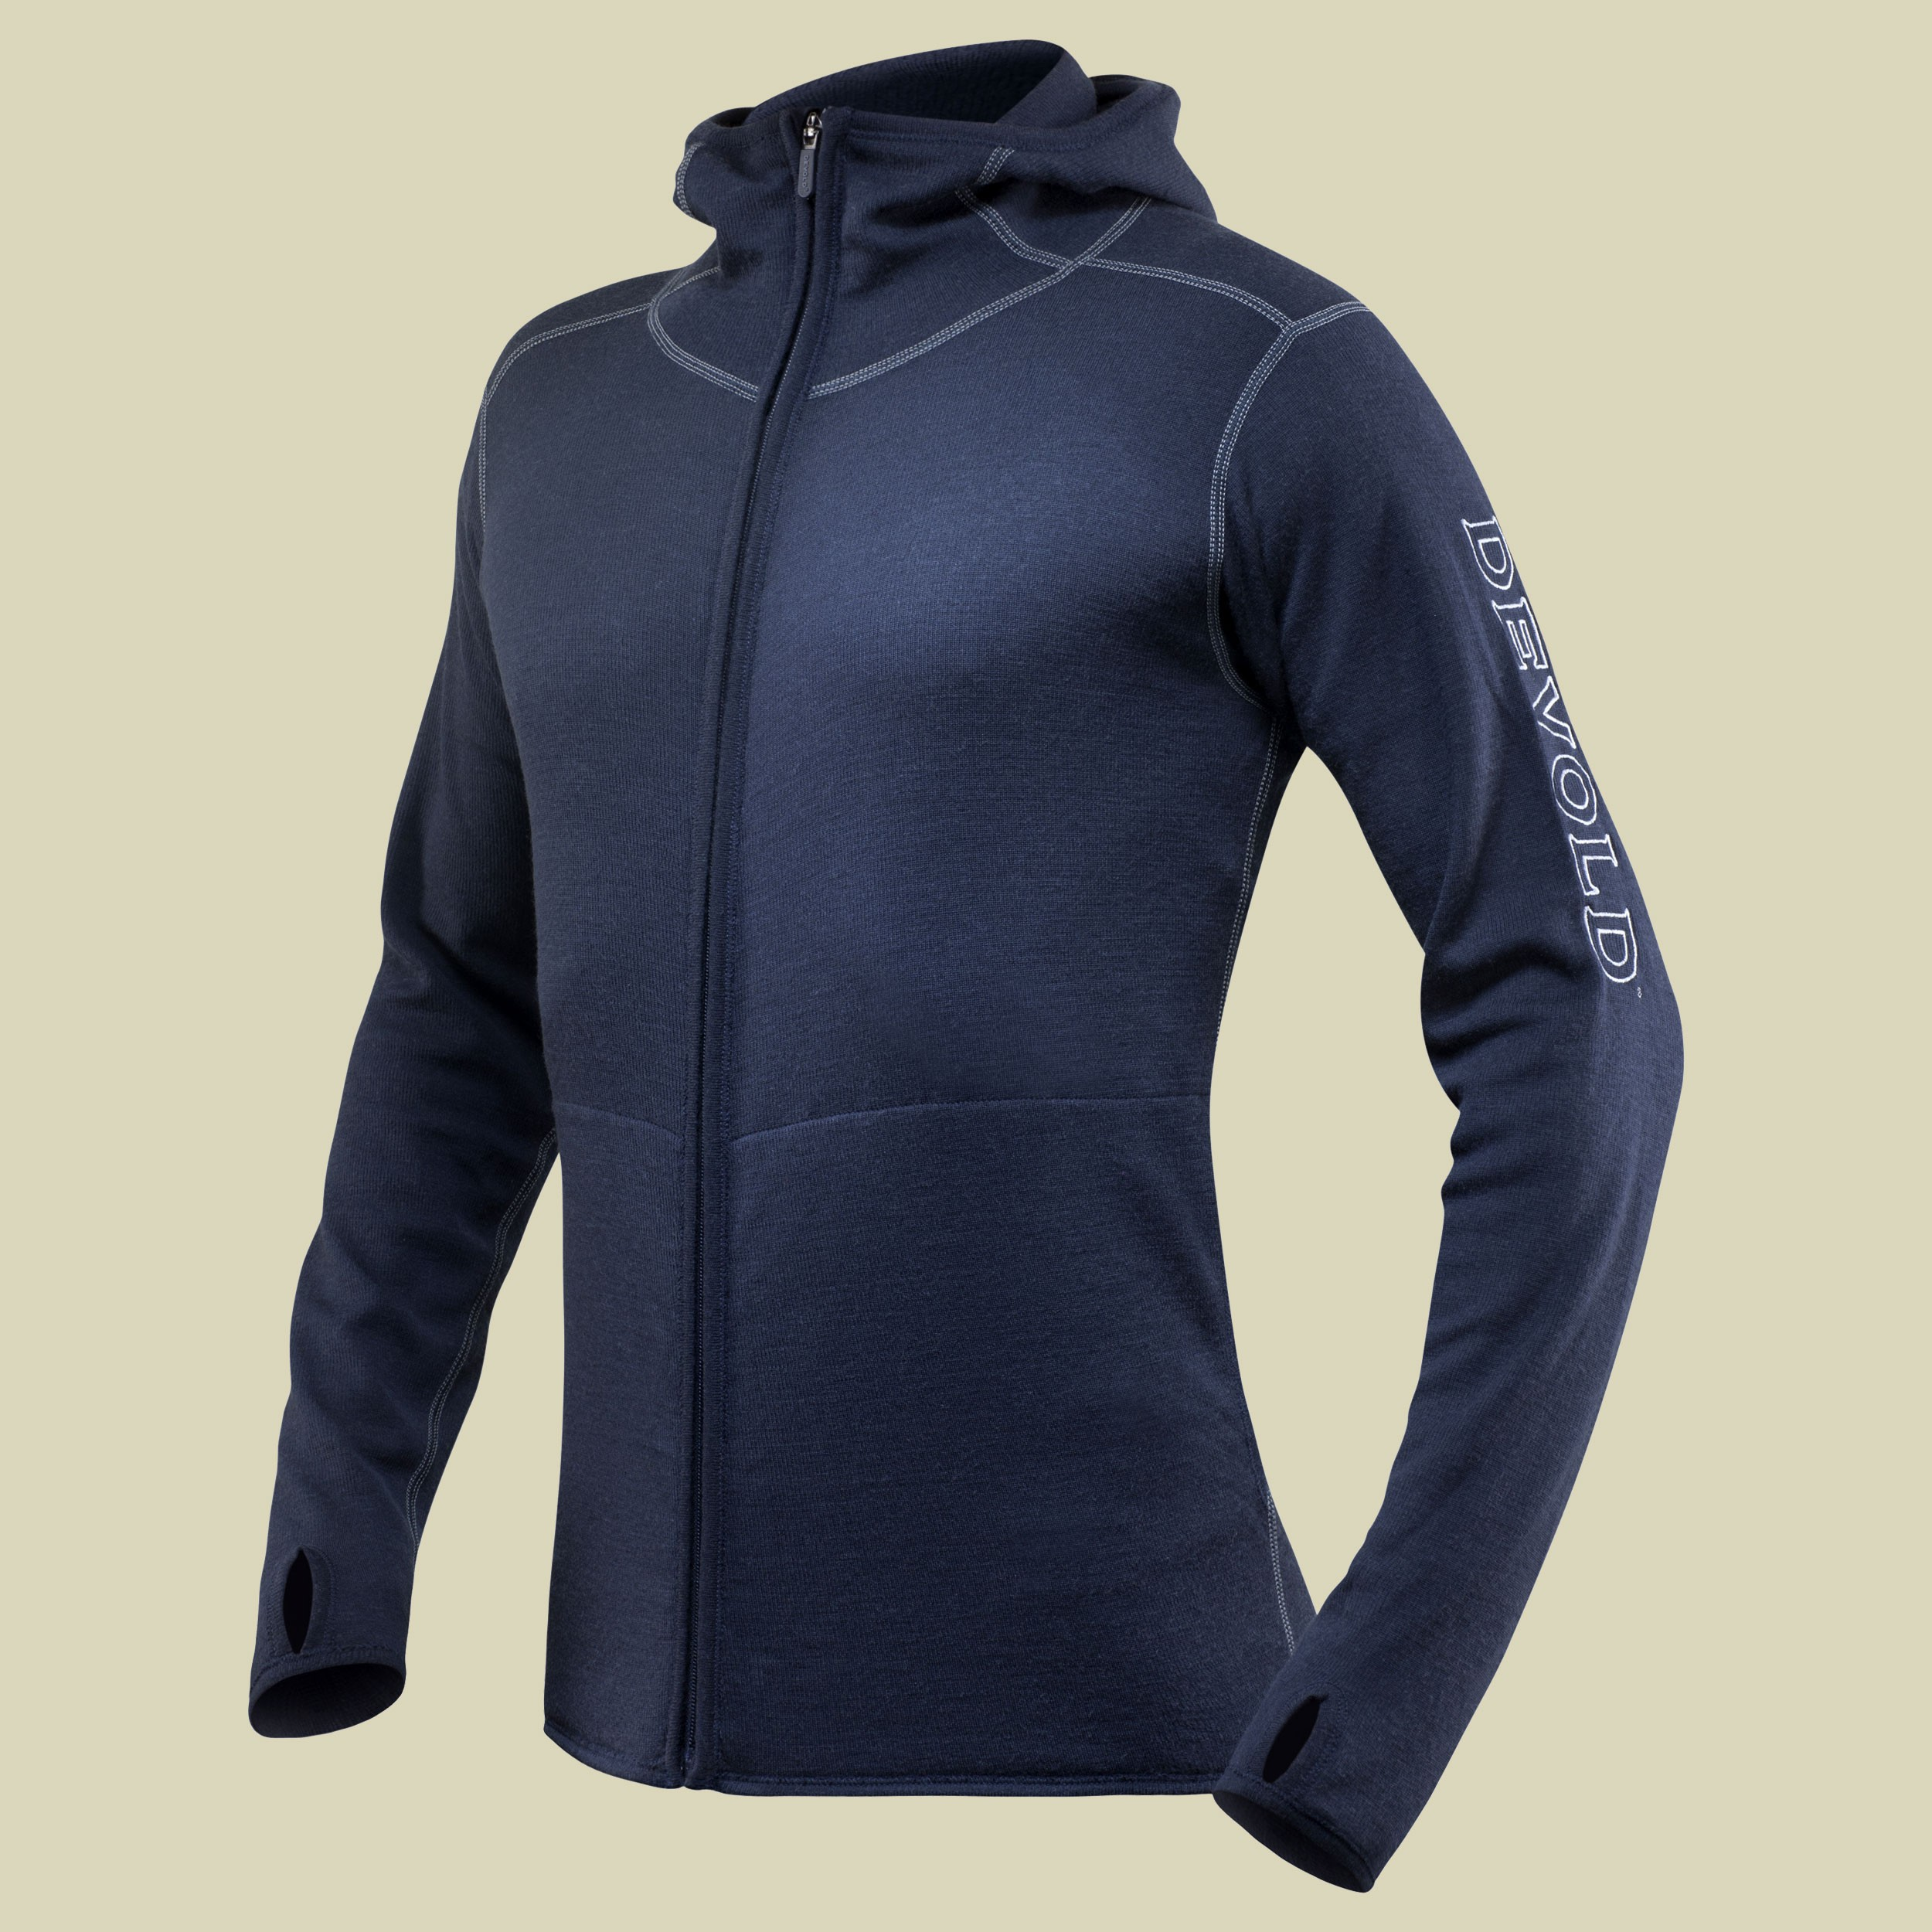 Optimum Jacket Men